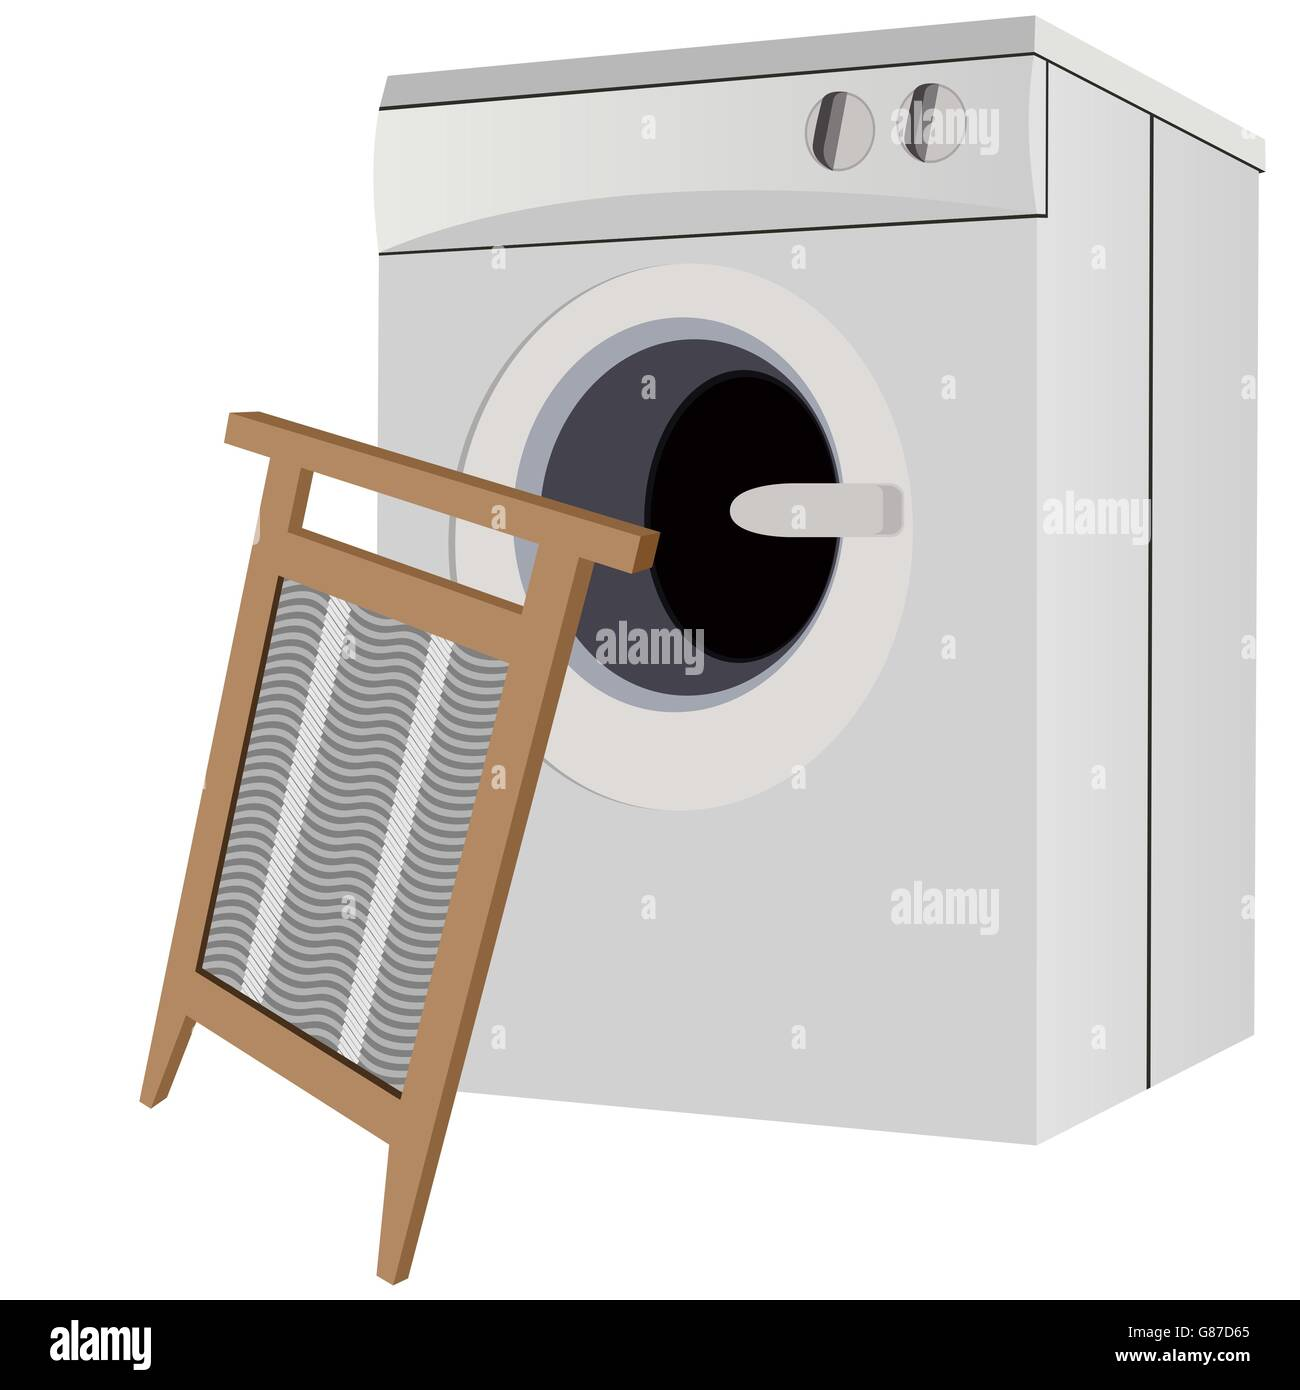 Modern appliances and a laundry board. The illustration on a white background. - Stock Image